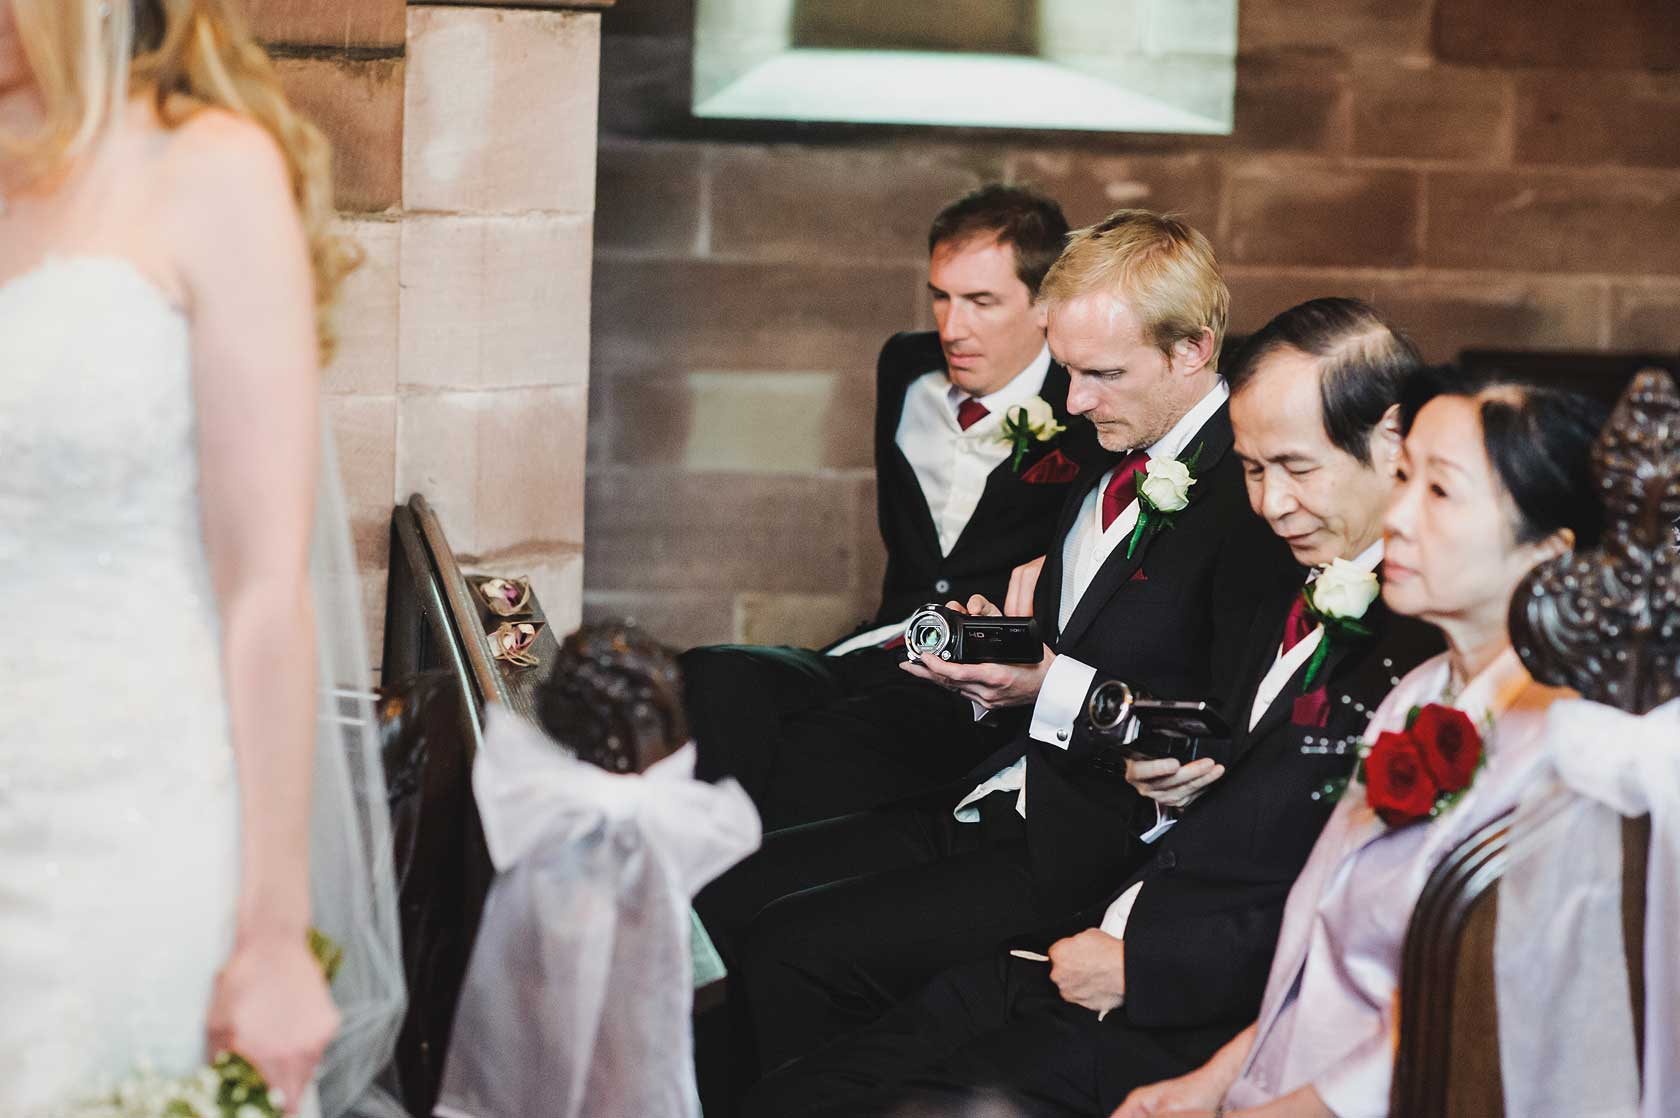 Reportage Wedding Photography at Peckforton Castle